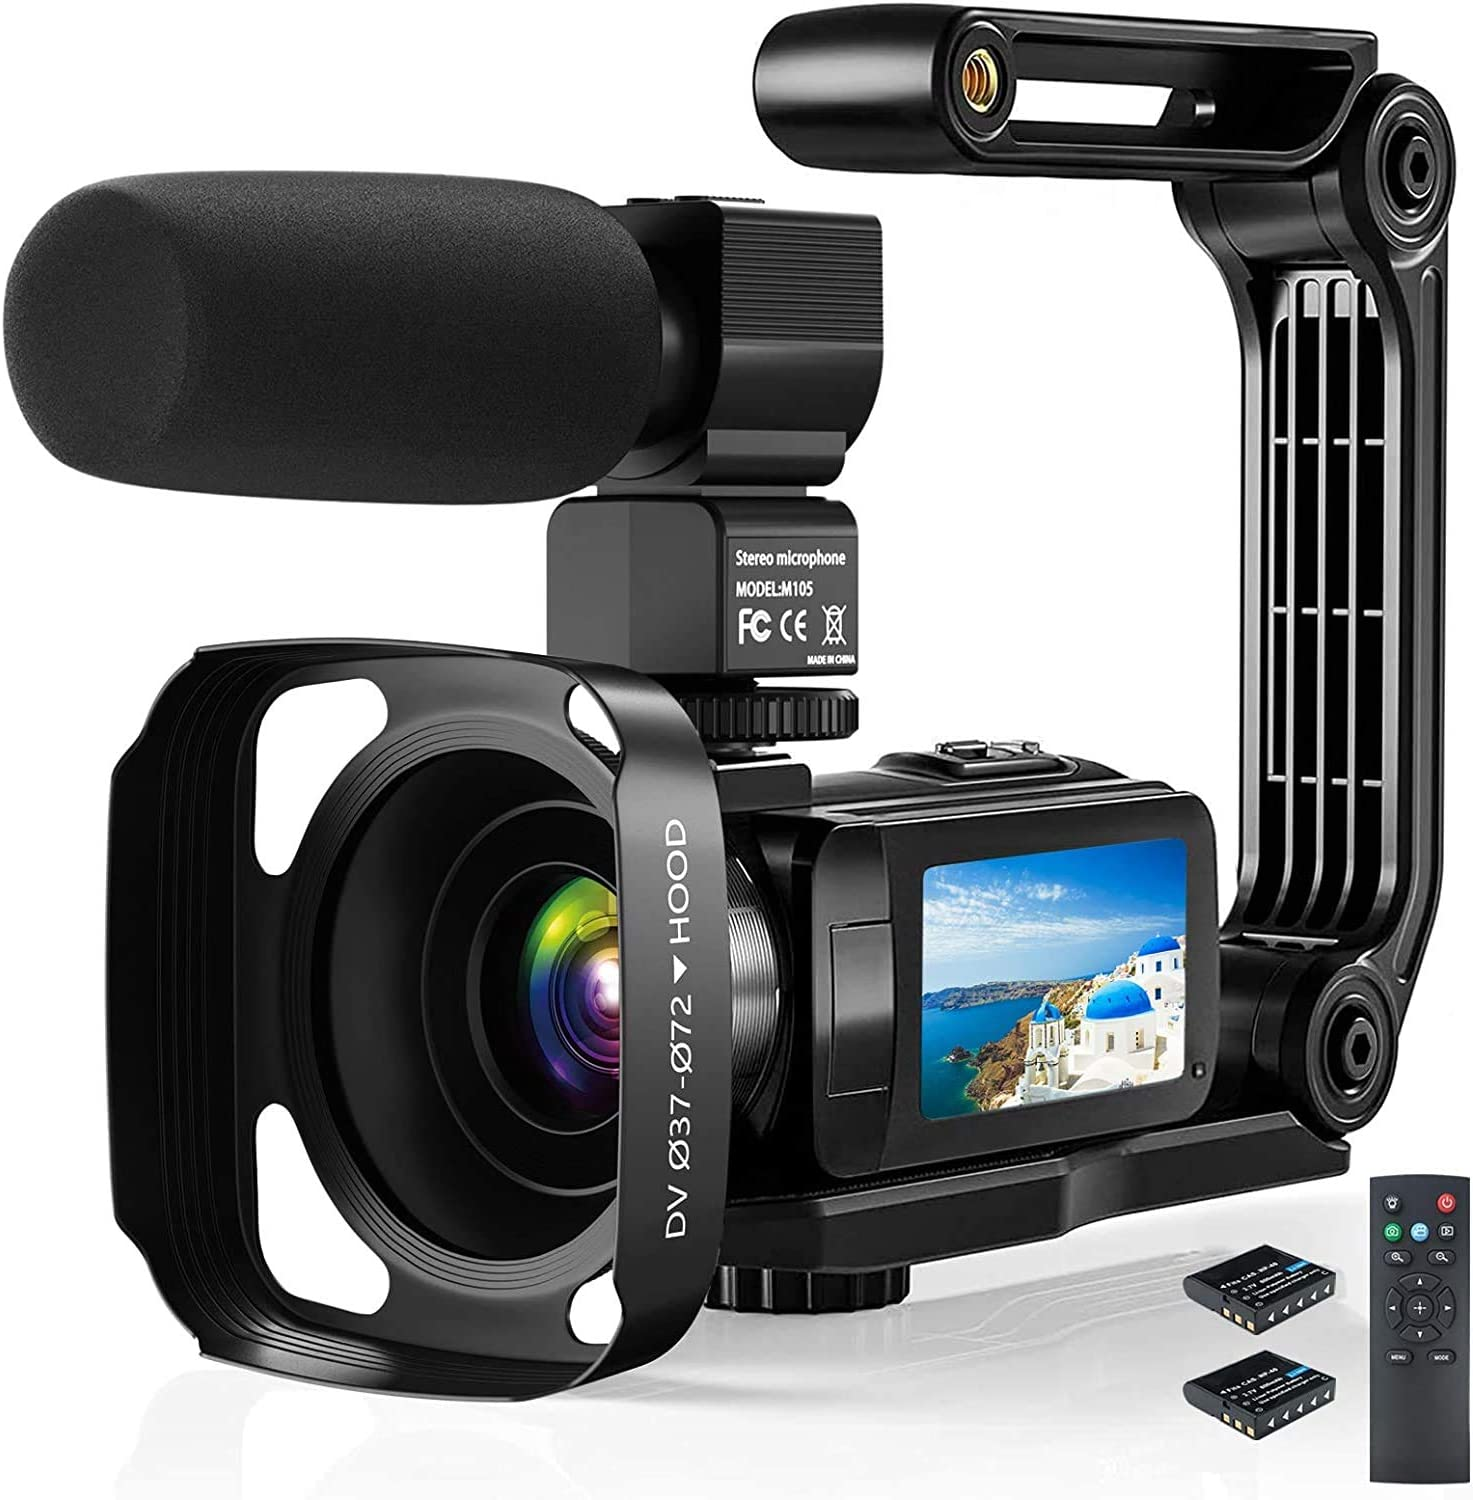 "Video Camera Camcorder, 2.7K Ultra HD YouTube Vlogging Camera, 36MP IR Night Vision Digital, 3.0"" IPS Touch Screen,16X Digital Zoom Video Camcorder with Microphone Handheld Stabilizer Remote Control"